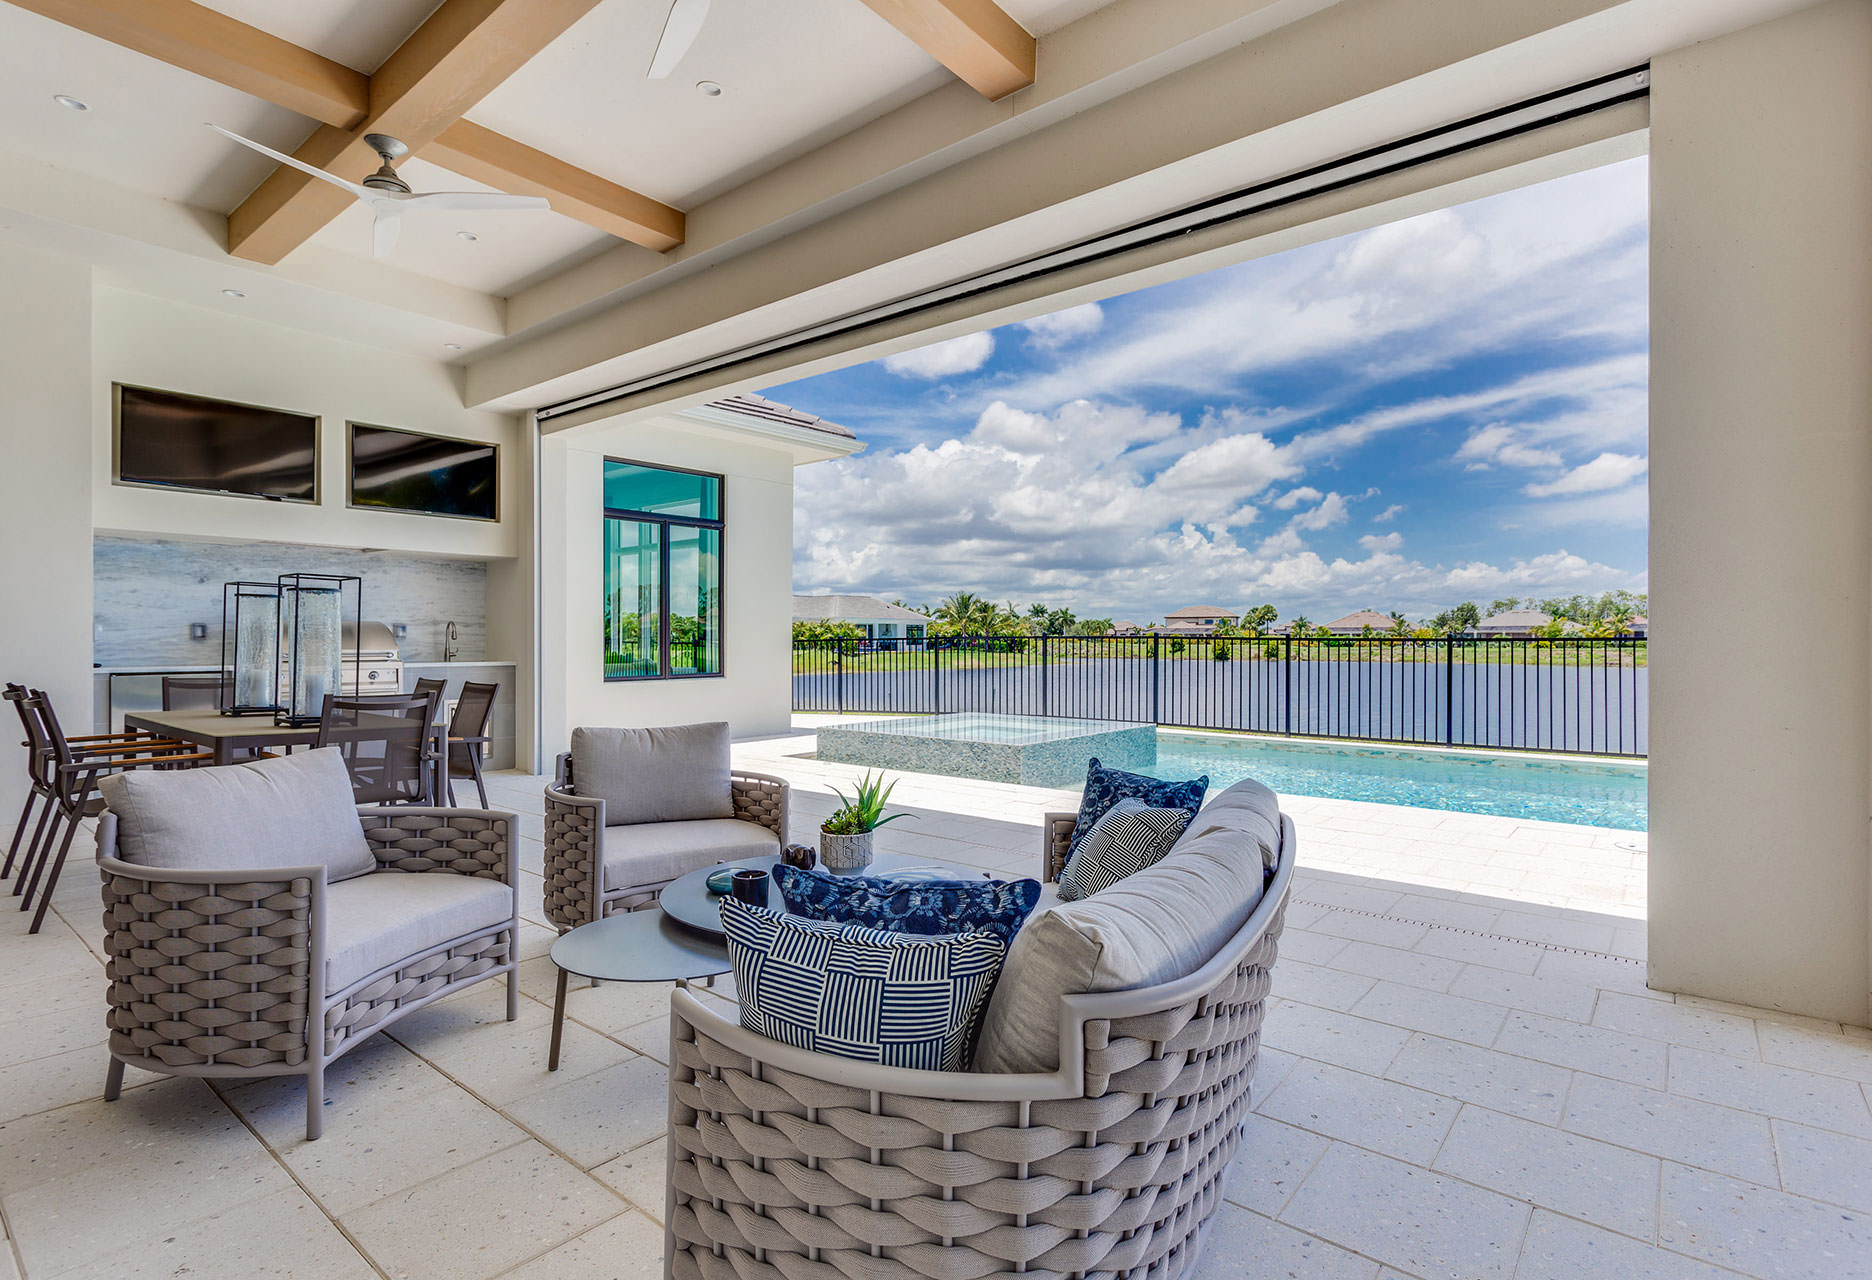 A pool view of the new Caprina model, now available for viewing daily in the Peninsula at Treviso Bay.